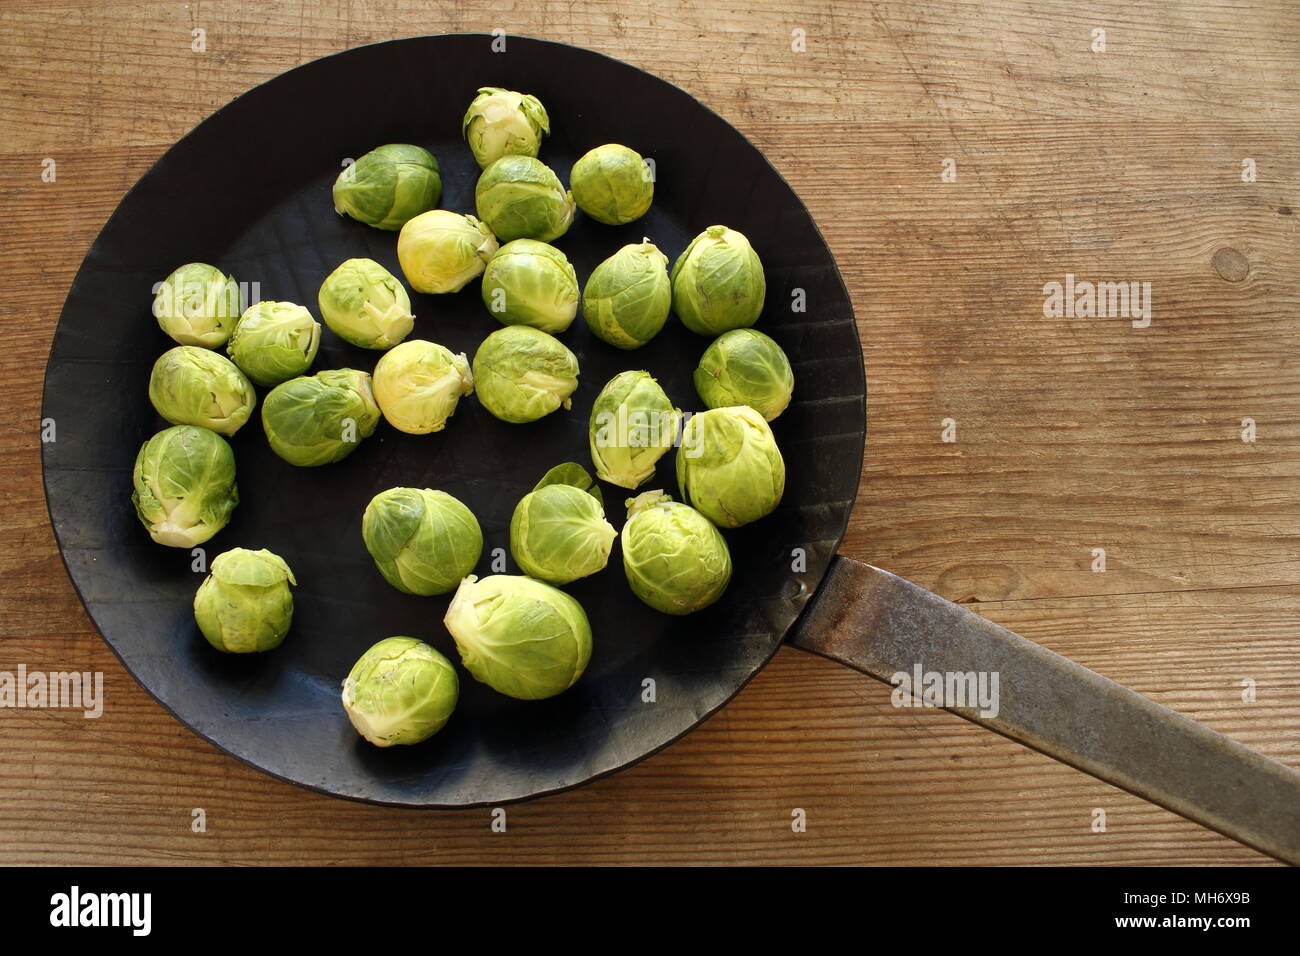 composition of fresh brussels sprouts in an iron pan on a wooden board - Stock Image